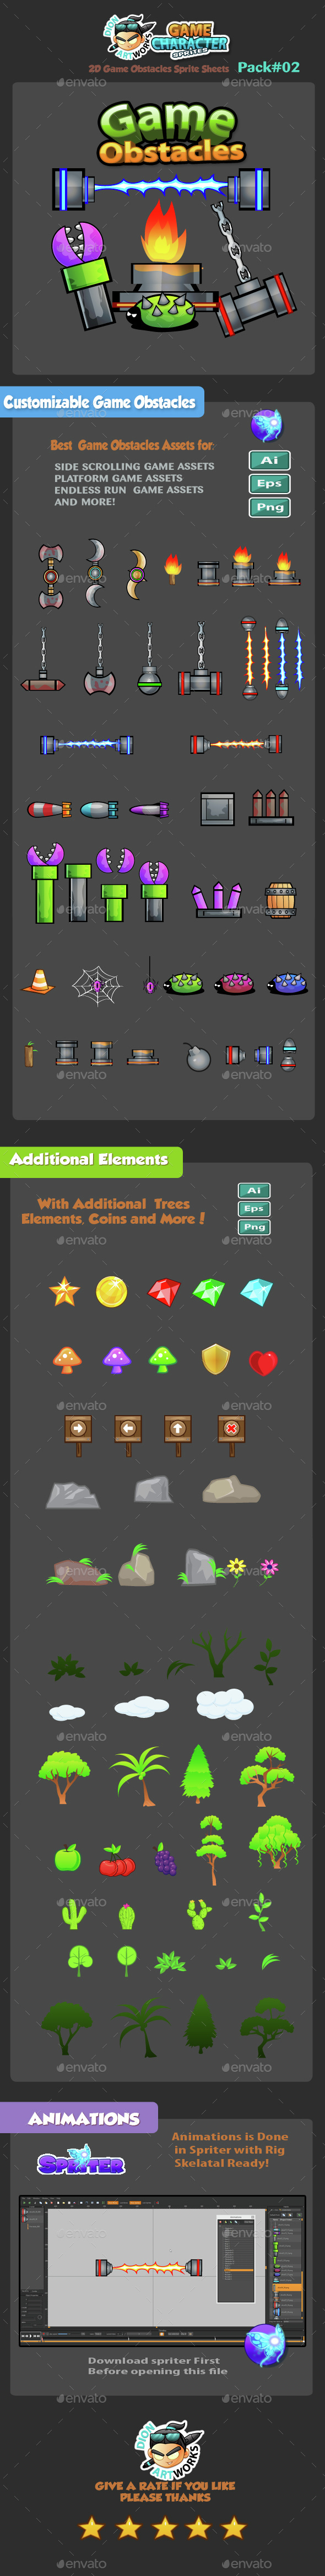 2D Game Obstacles Trees and Elements Pack02 - Miscellaneous Game Assets